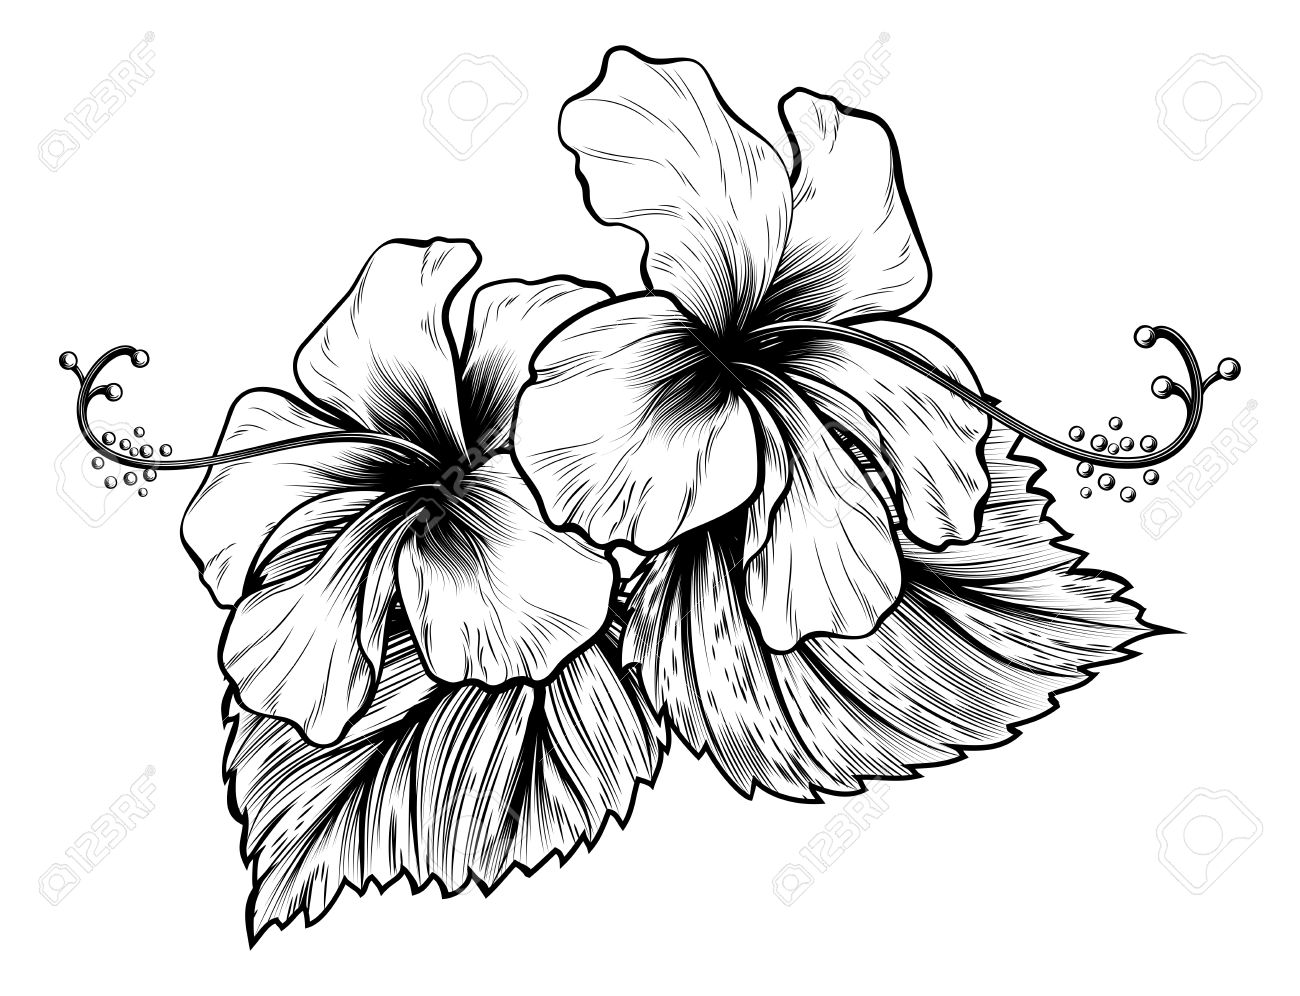 Hawaiian Hibiscus Drawing At Getdrawings